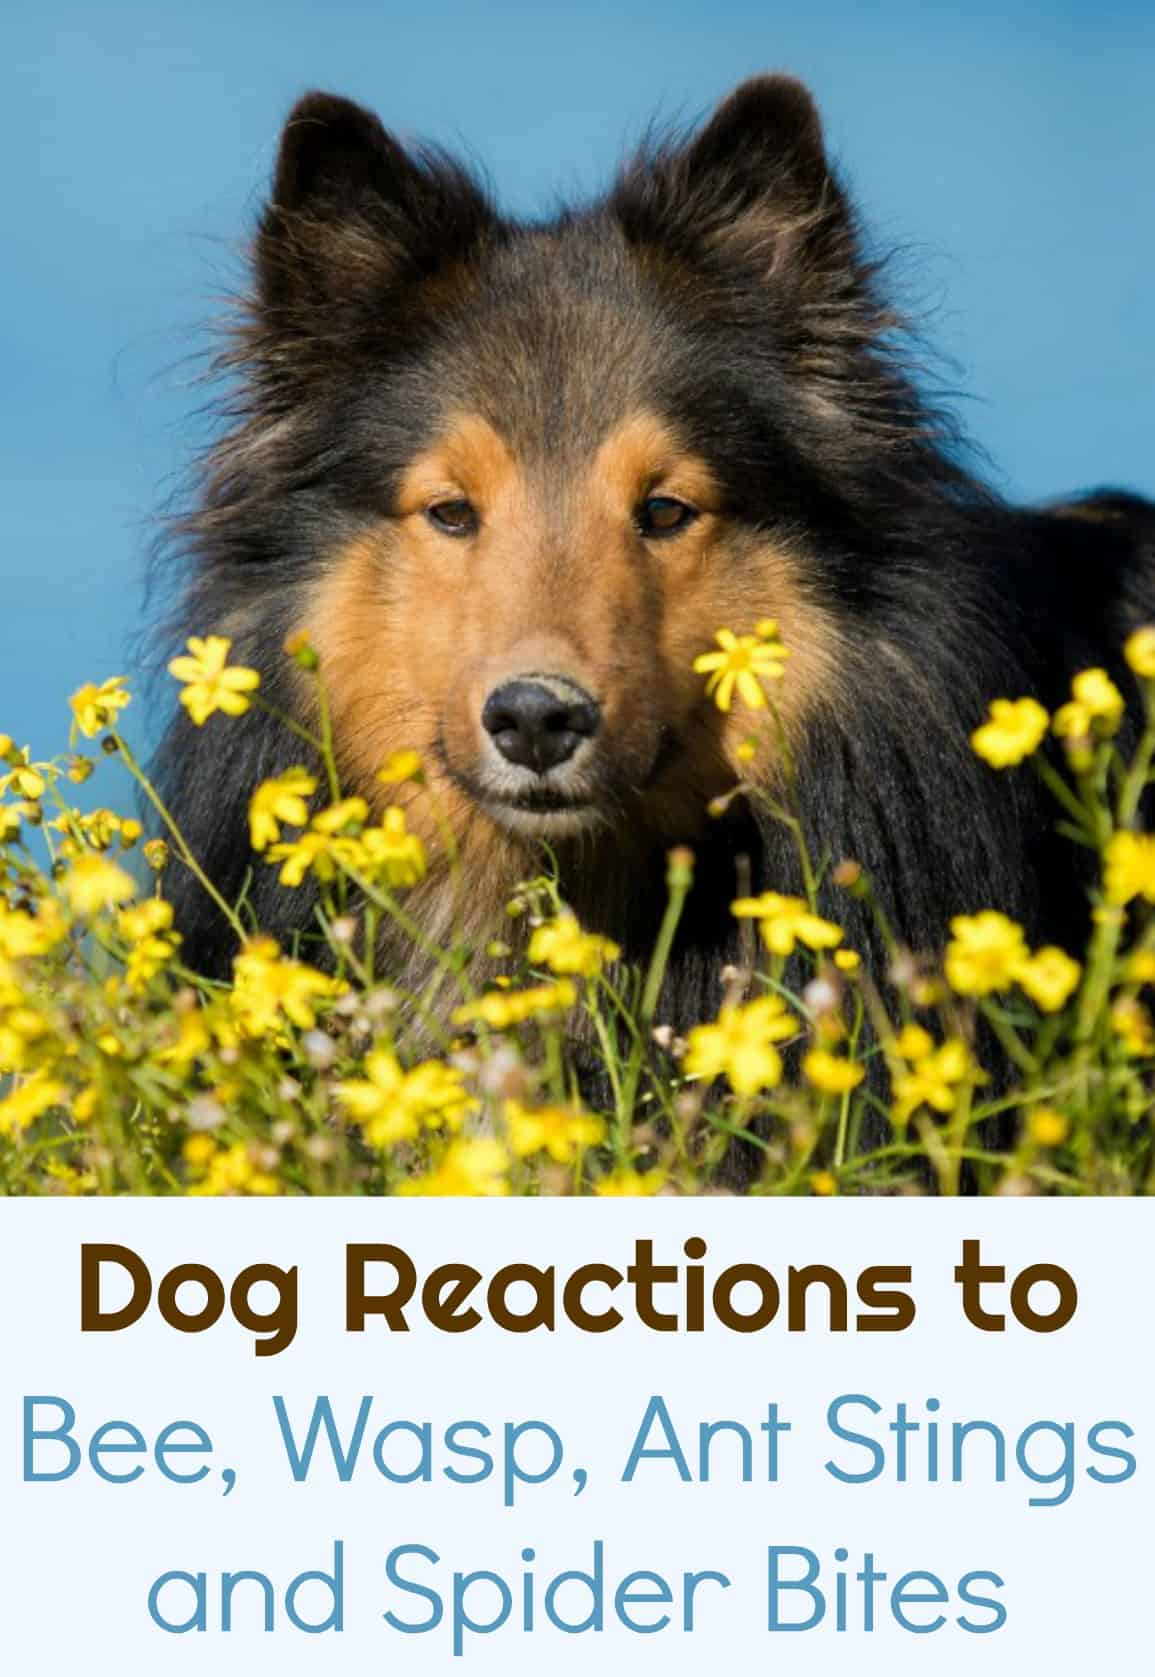 Dog Reactions to Bee, Wasp, Ant Stings and Spider Bites #pethealth